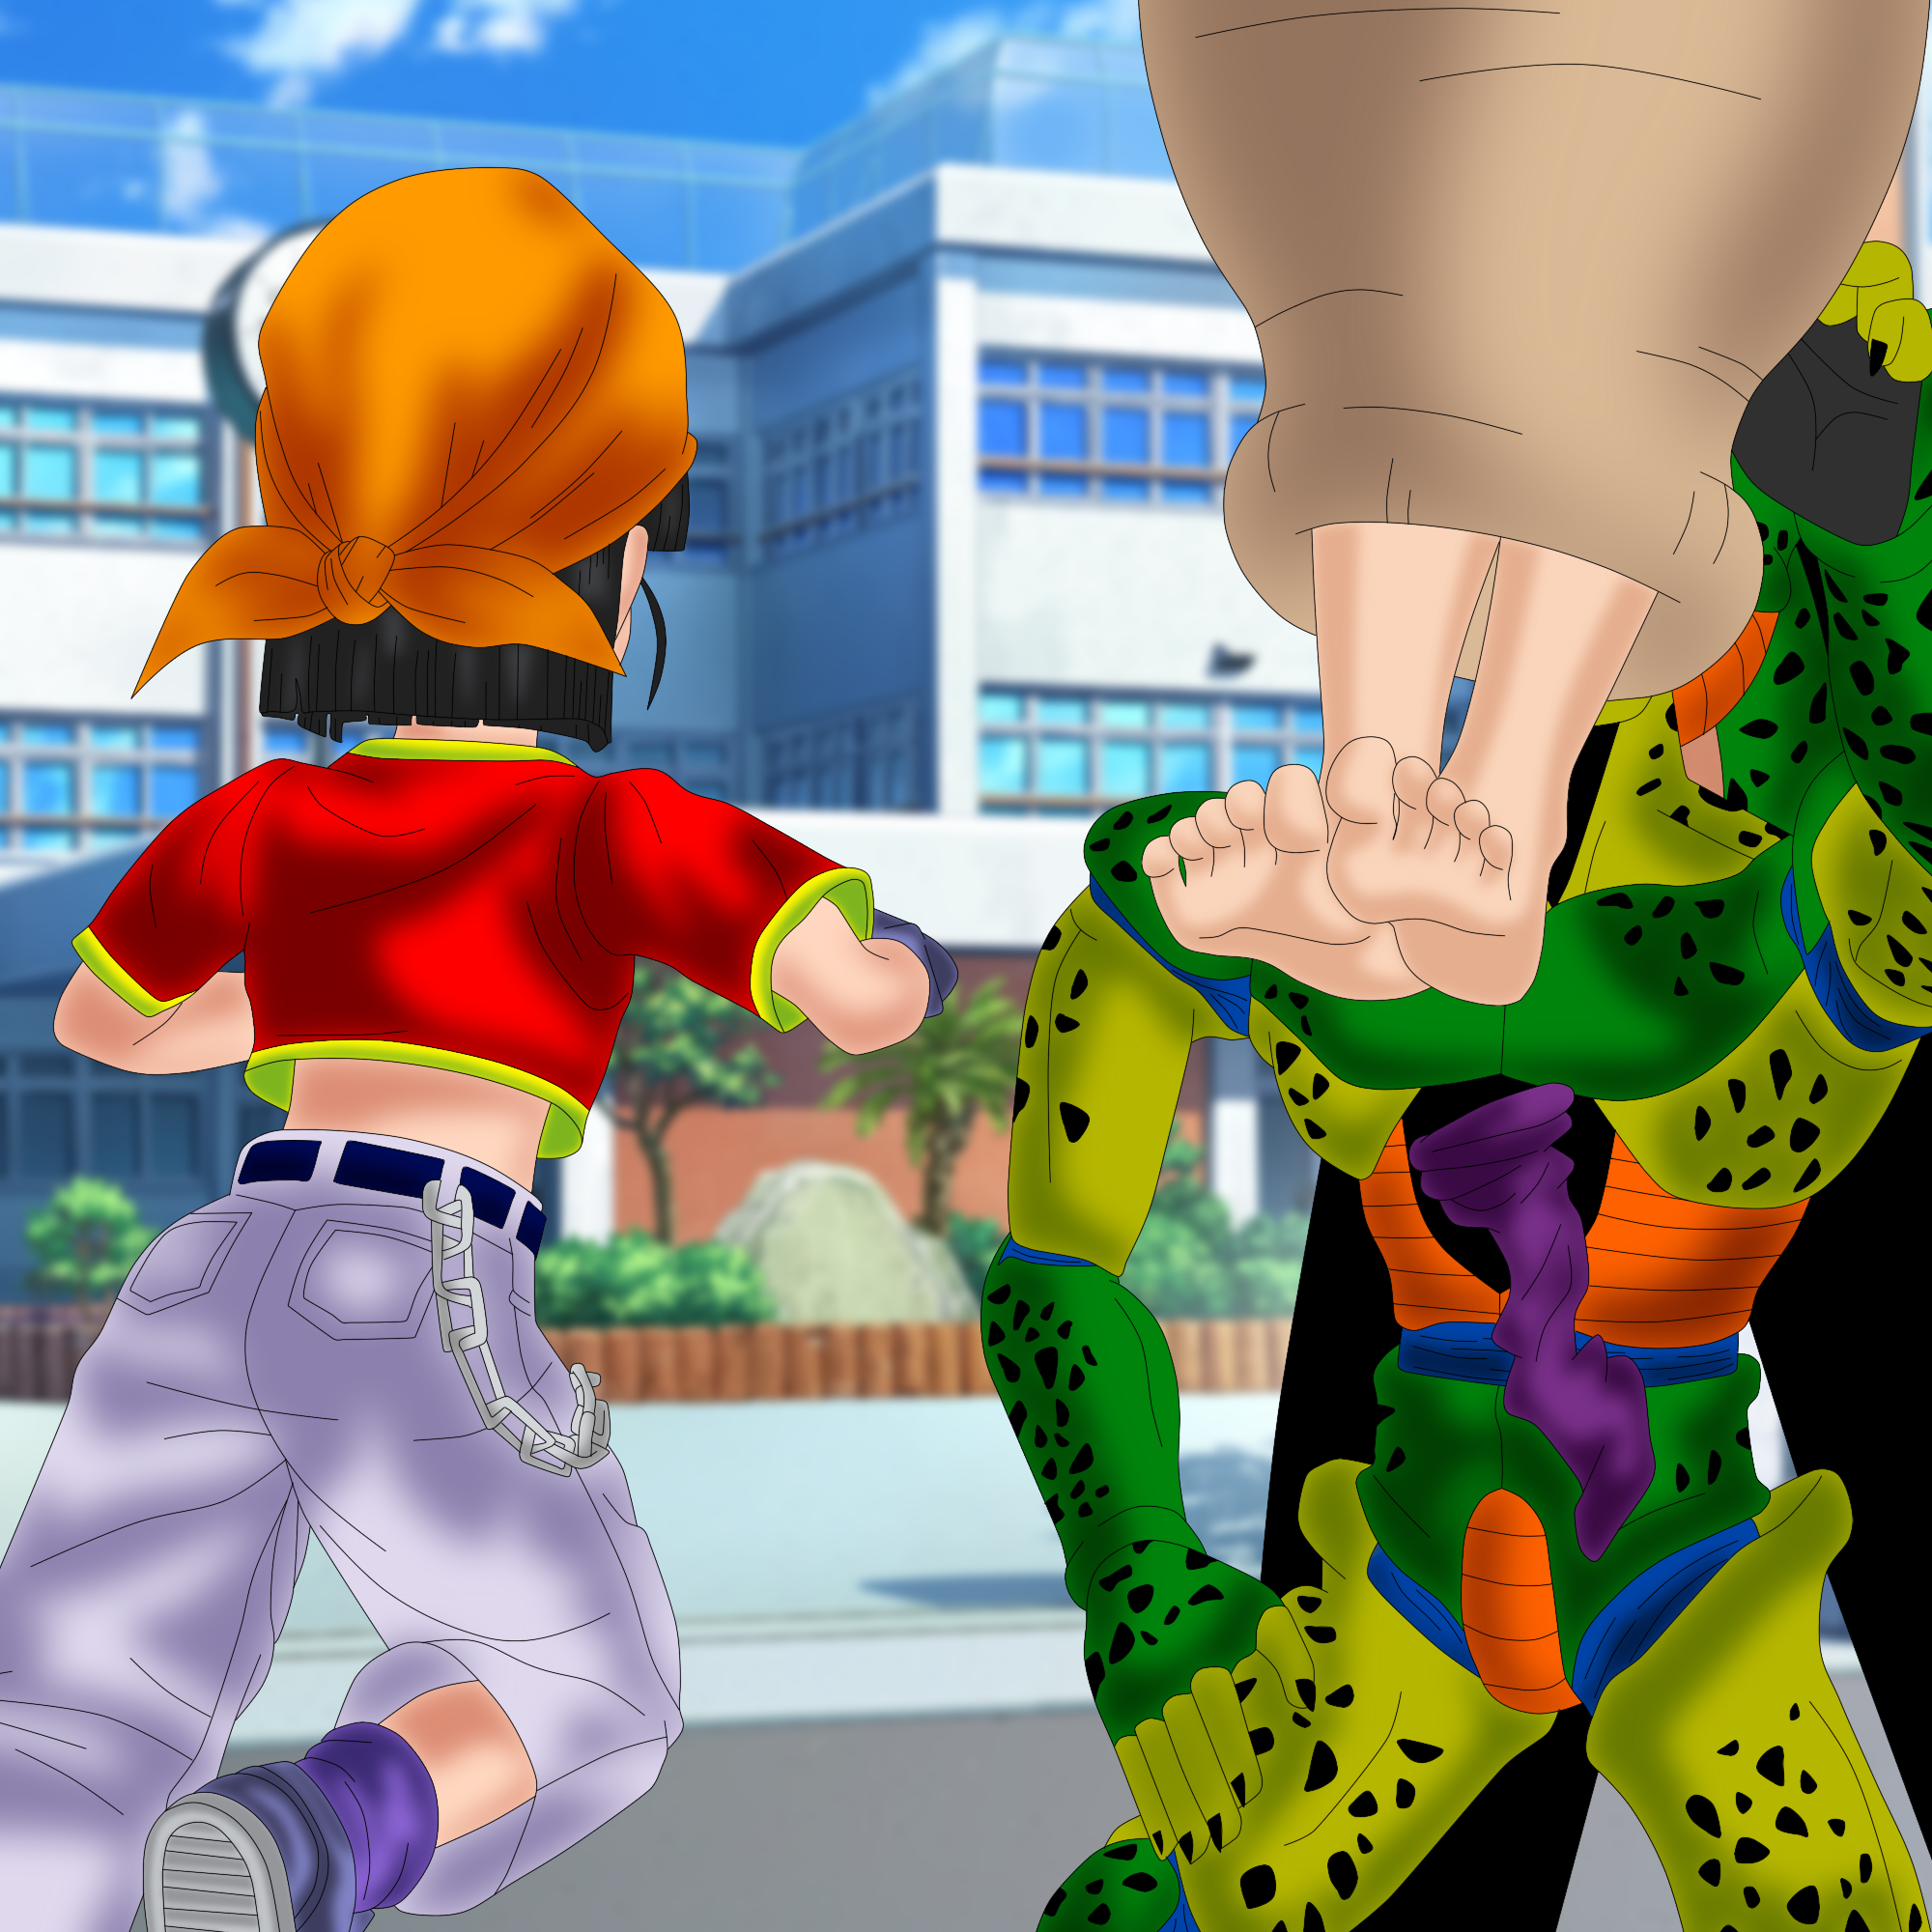 Android 18 And Tail Deviantart: Cell's Sweet Revenge! [PART 3] By SoleSwallower On DeviantArt